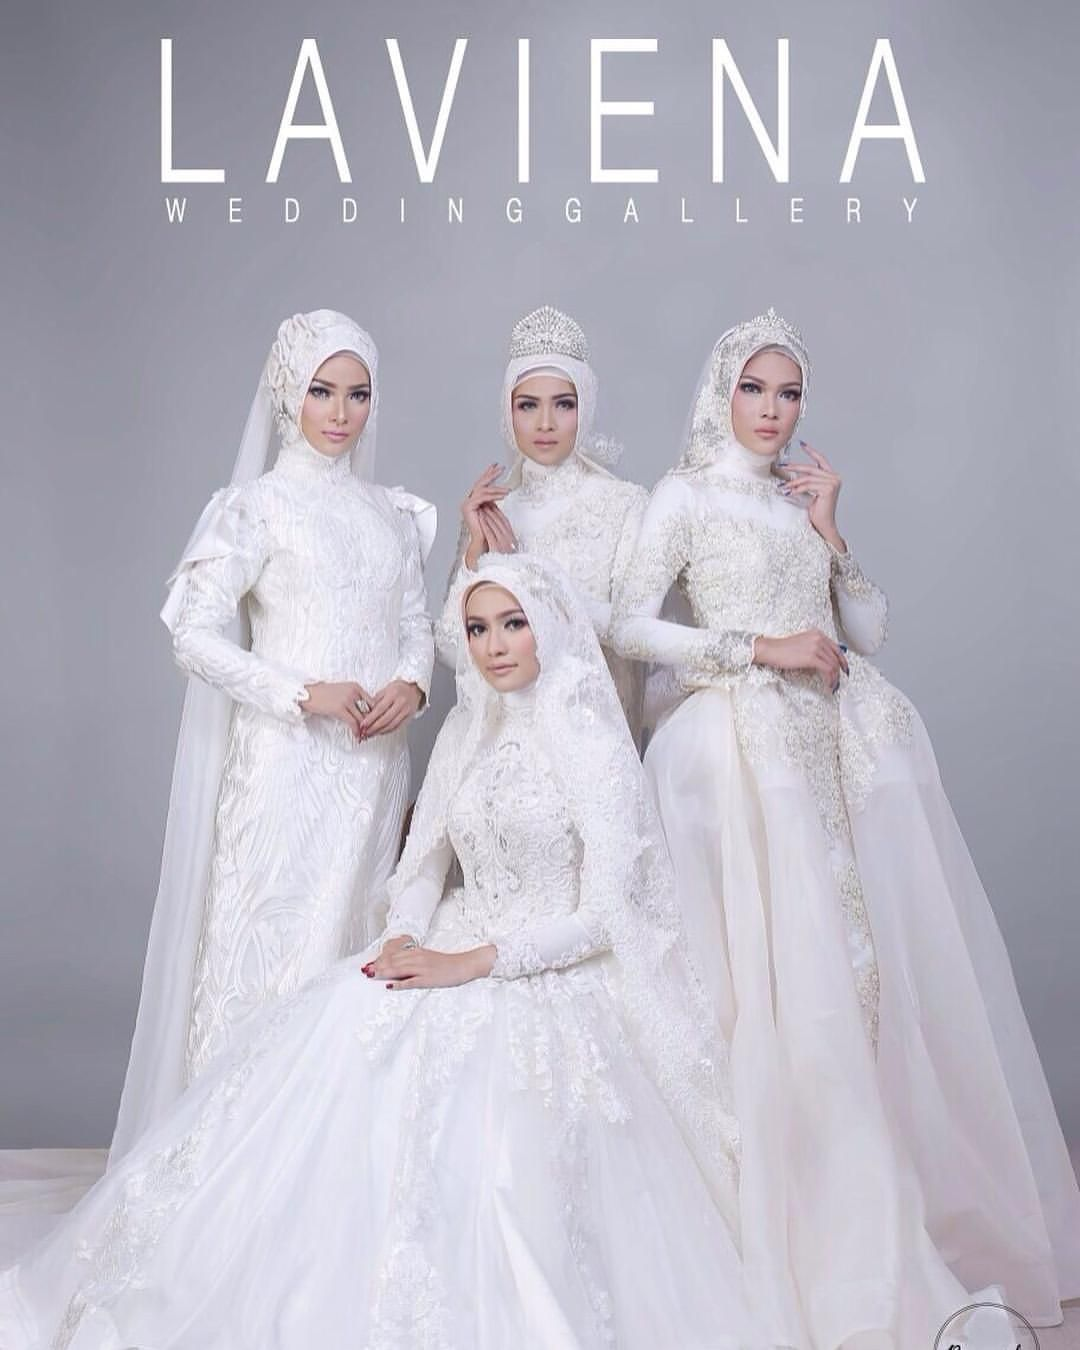 likes comments laviena lavienaweddinggallery on